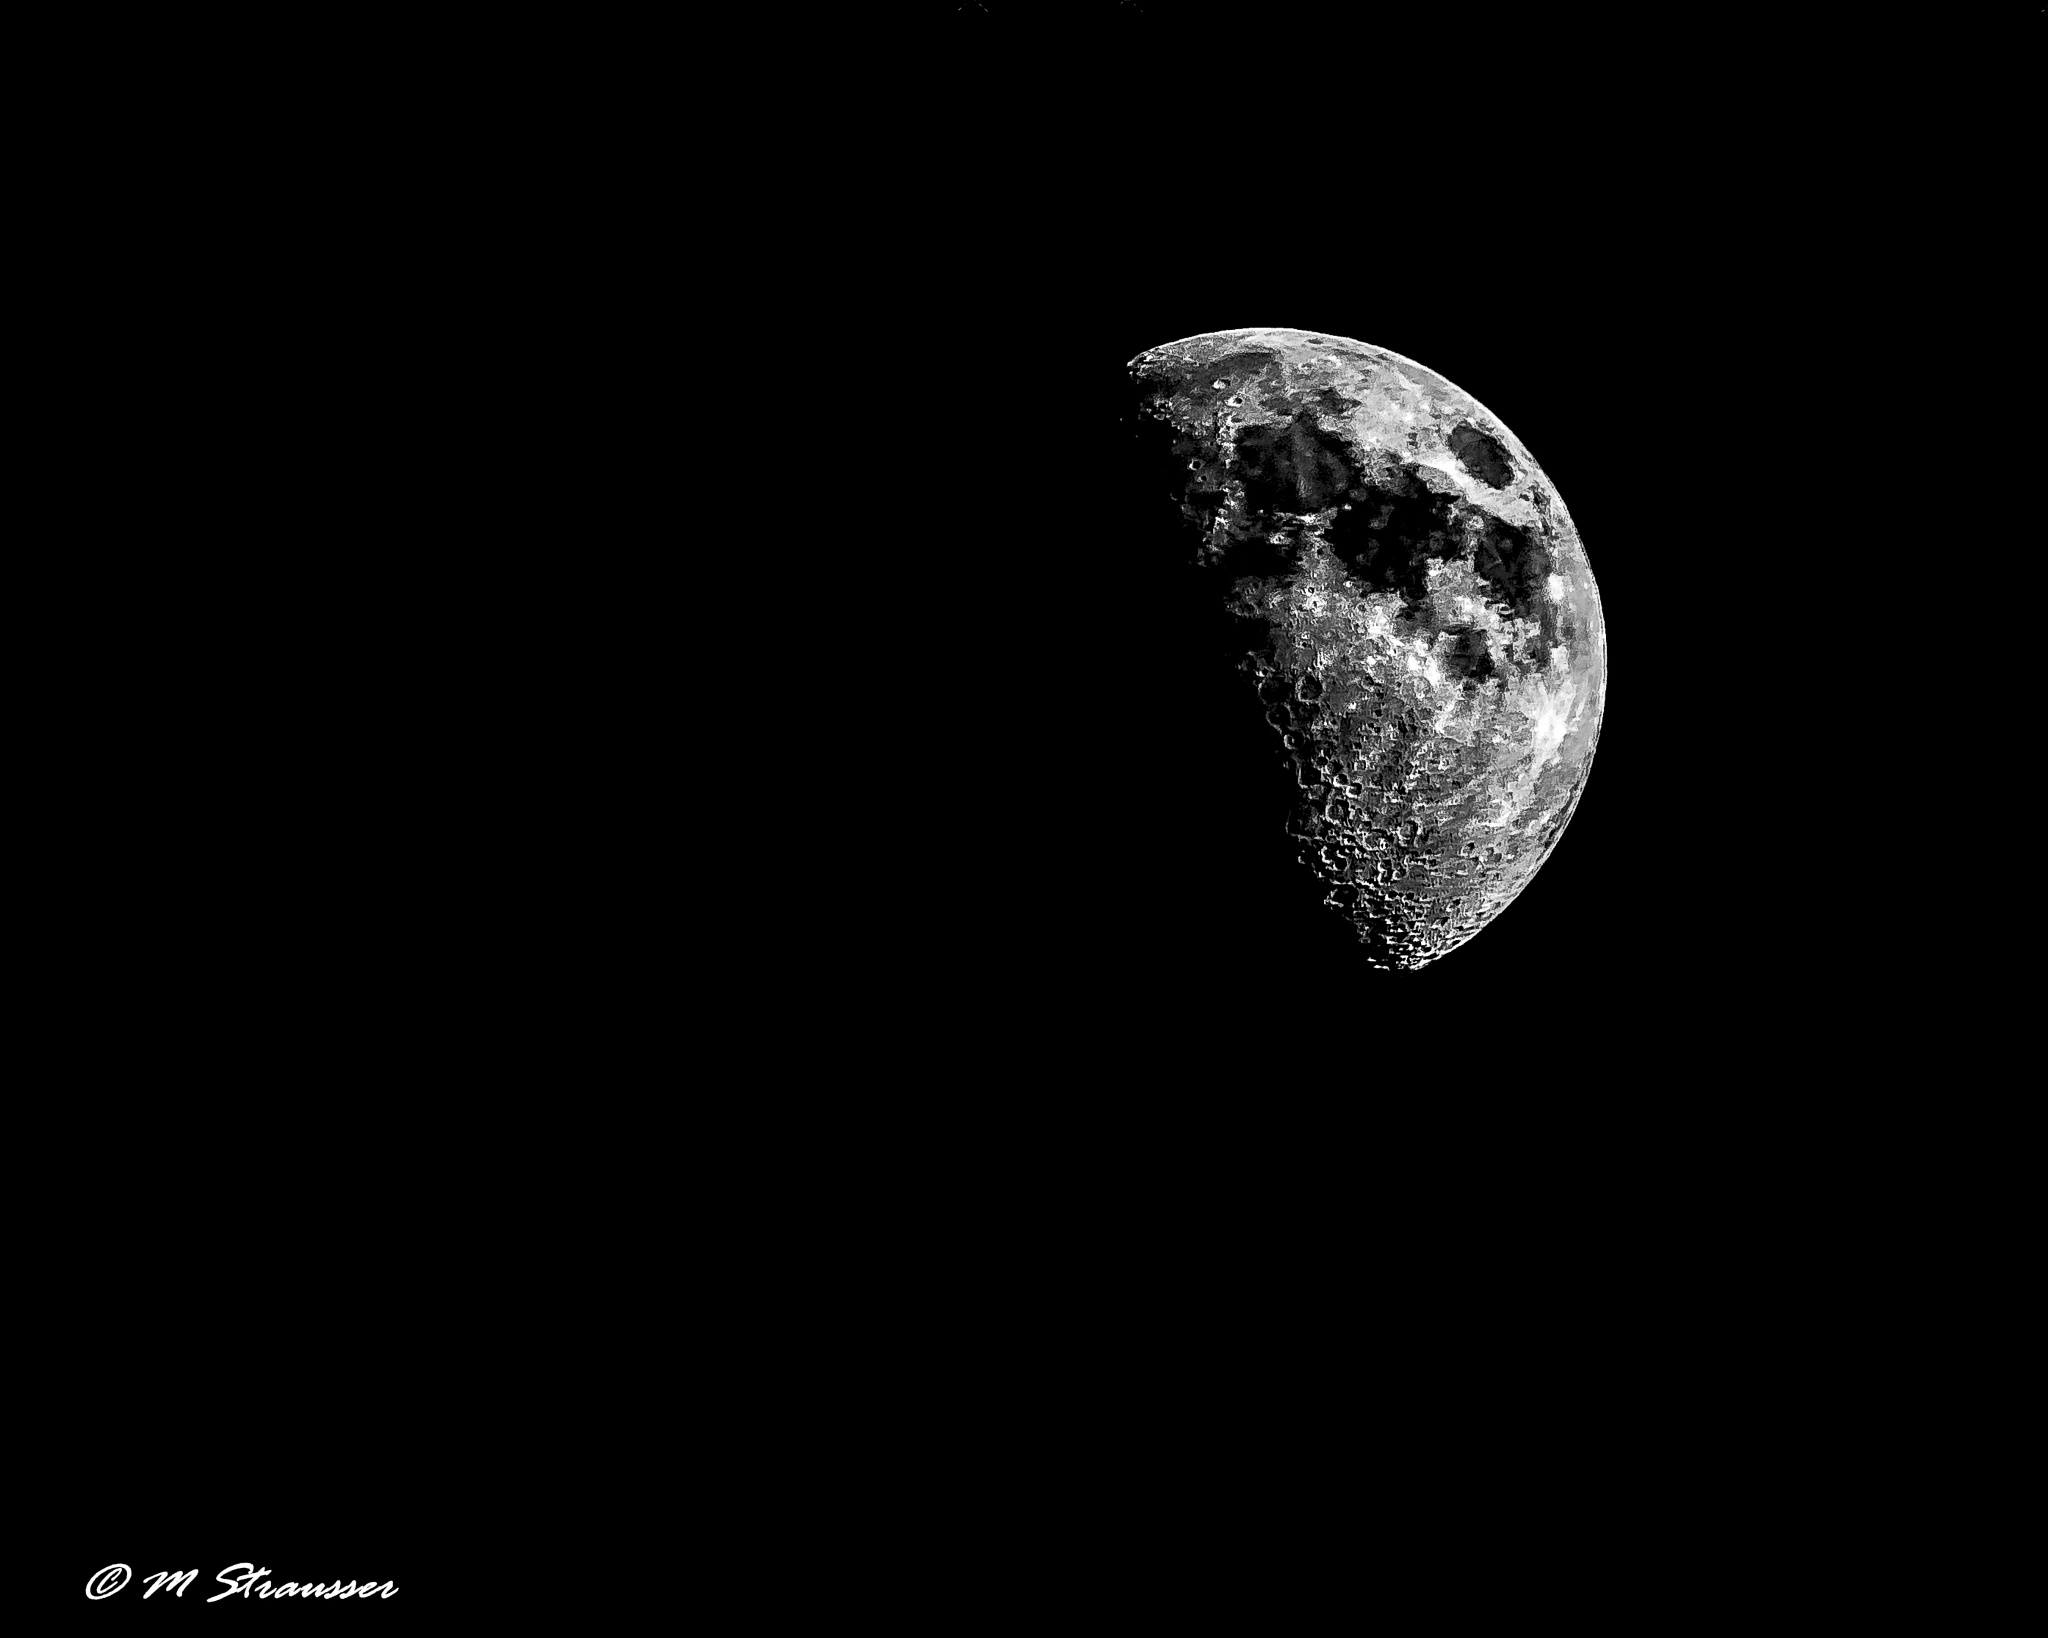 moon shot by MStrausser of the iMage Shack